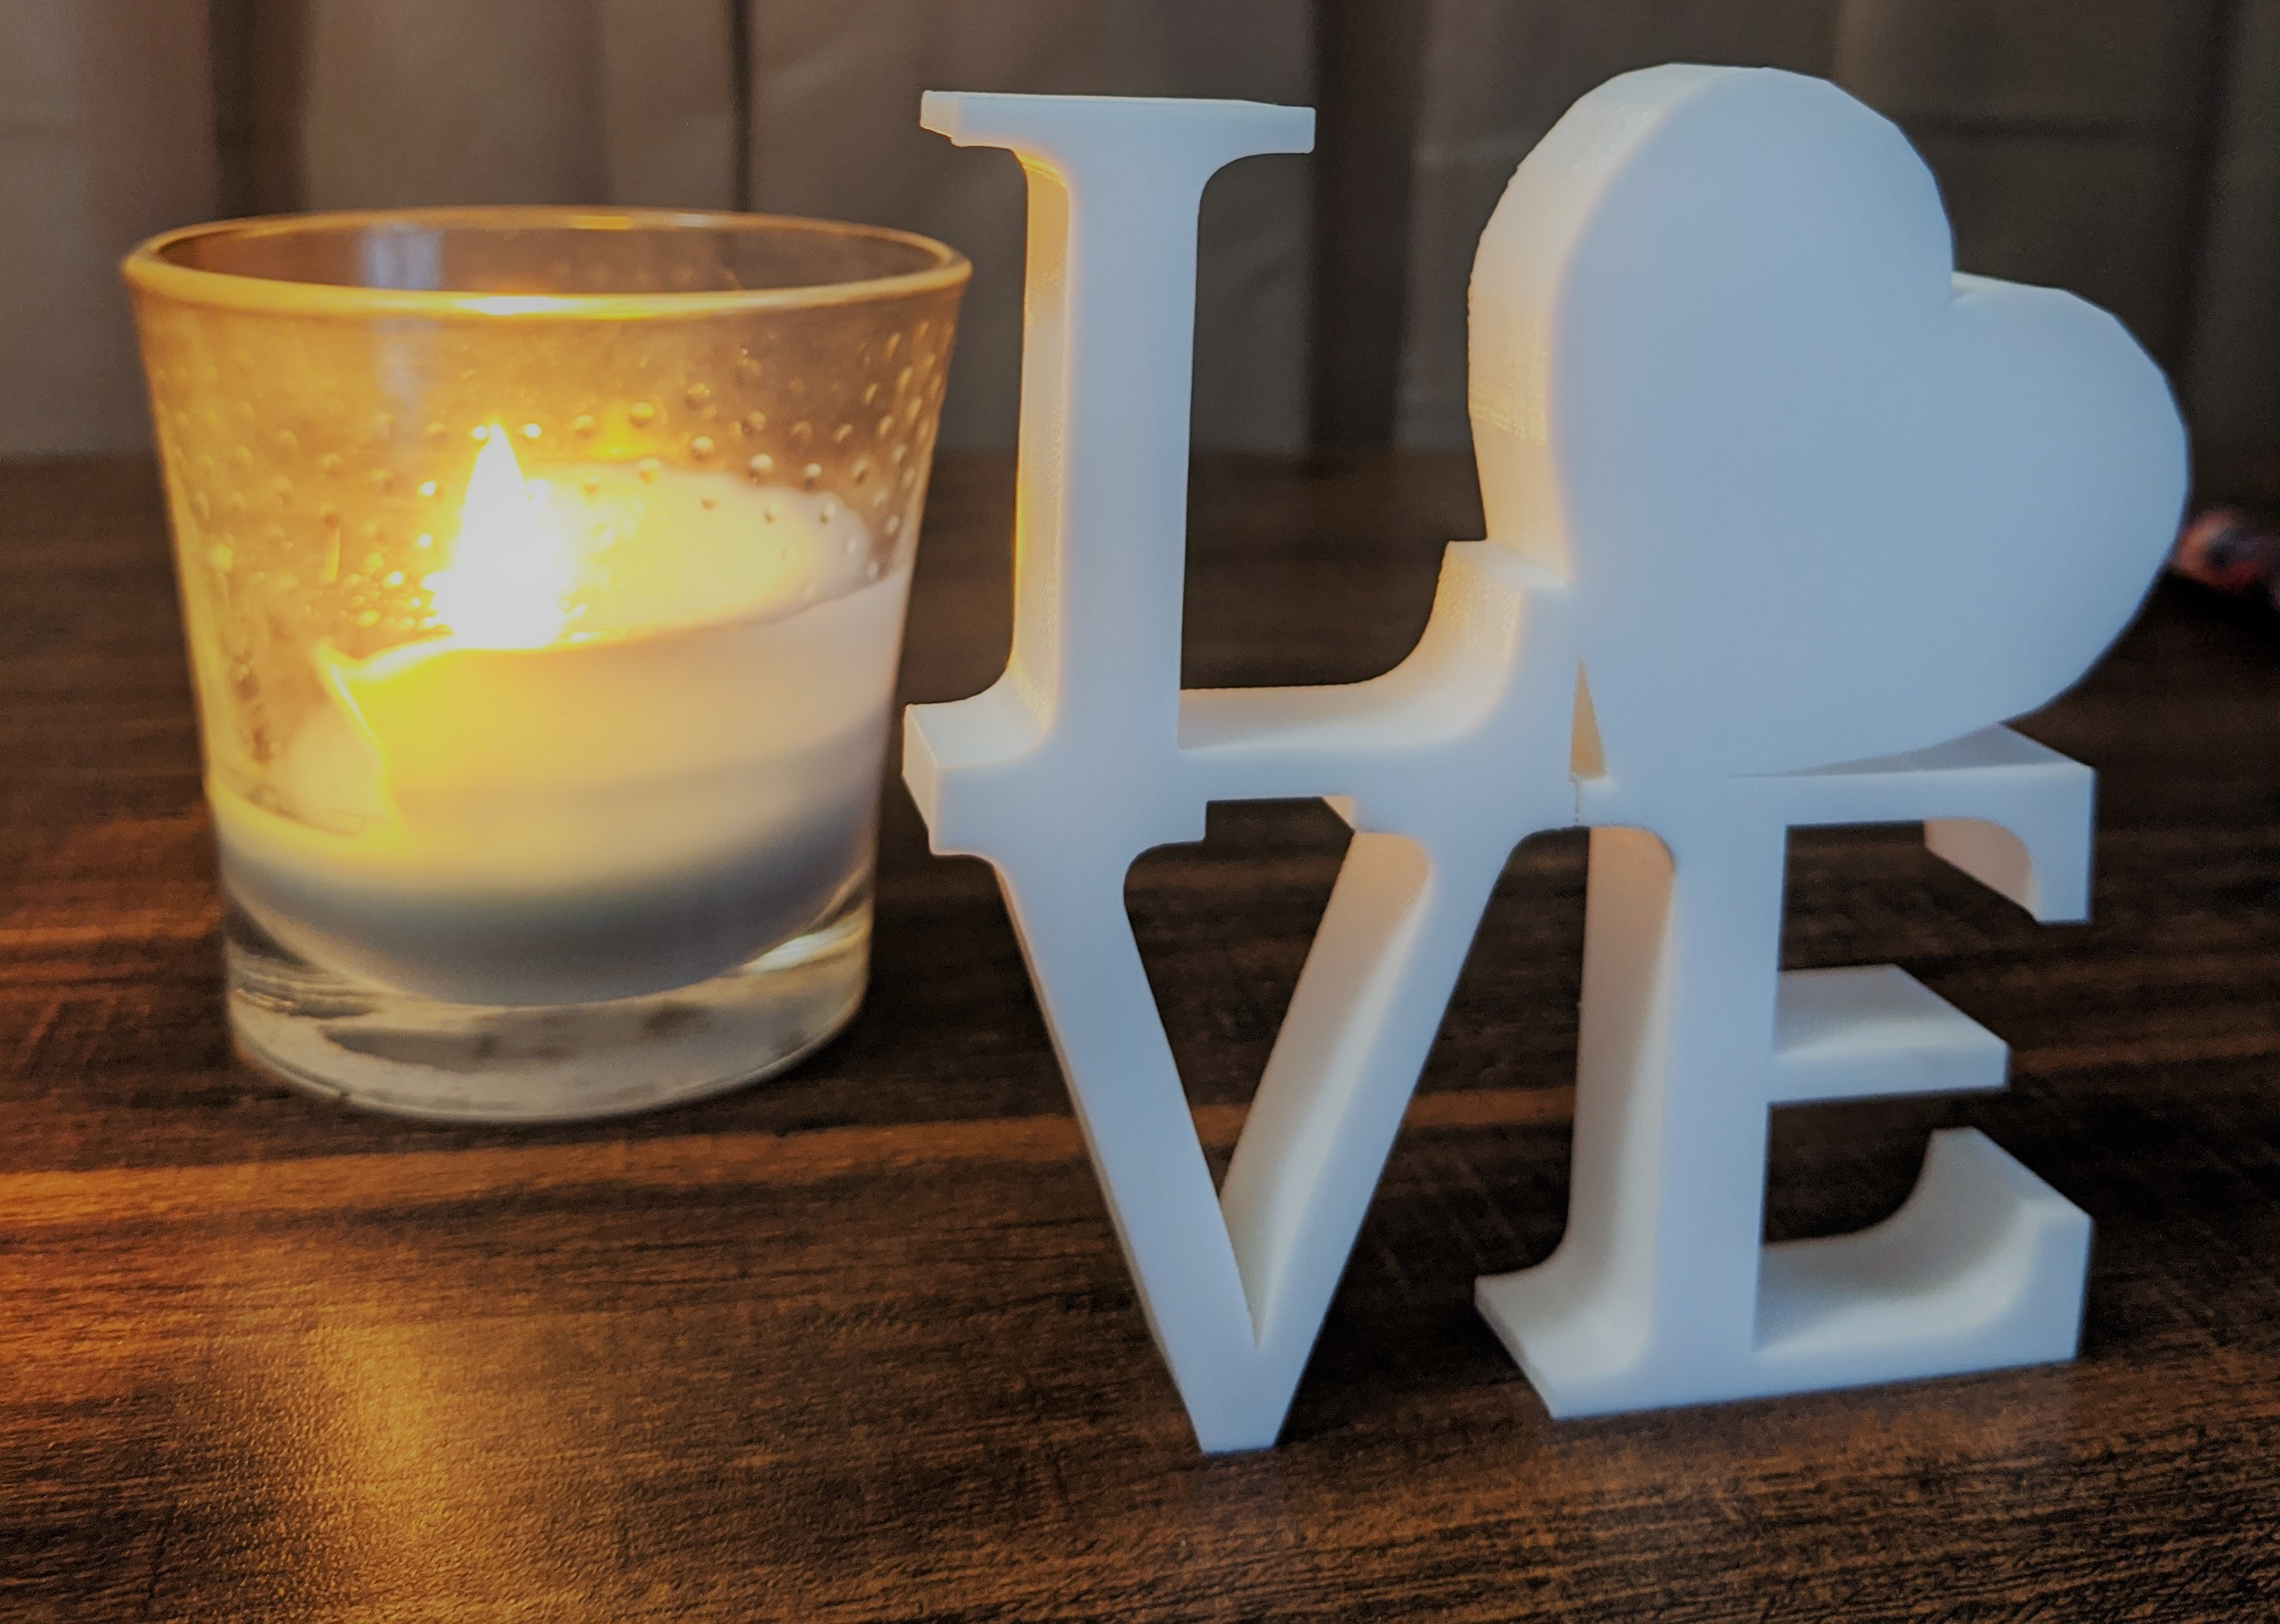 IMG_20200711_225829.jpg Download free STL file Love Decor • 3D printer template, twogirlsonefrs